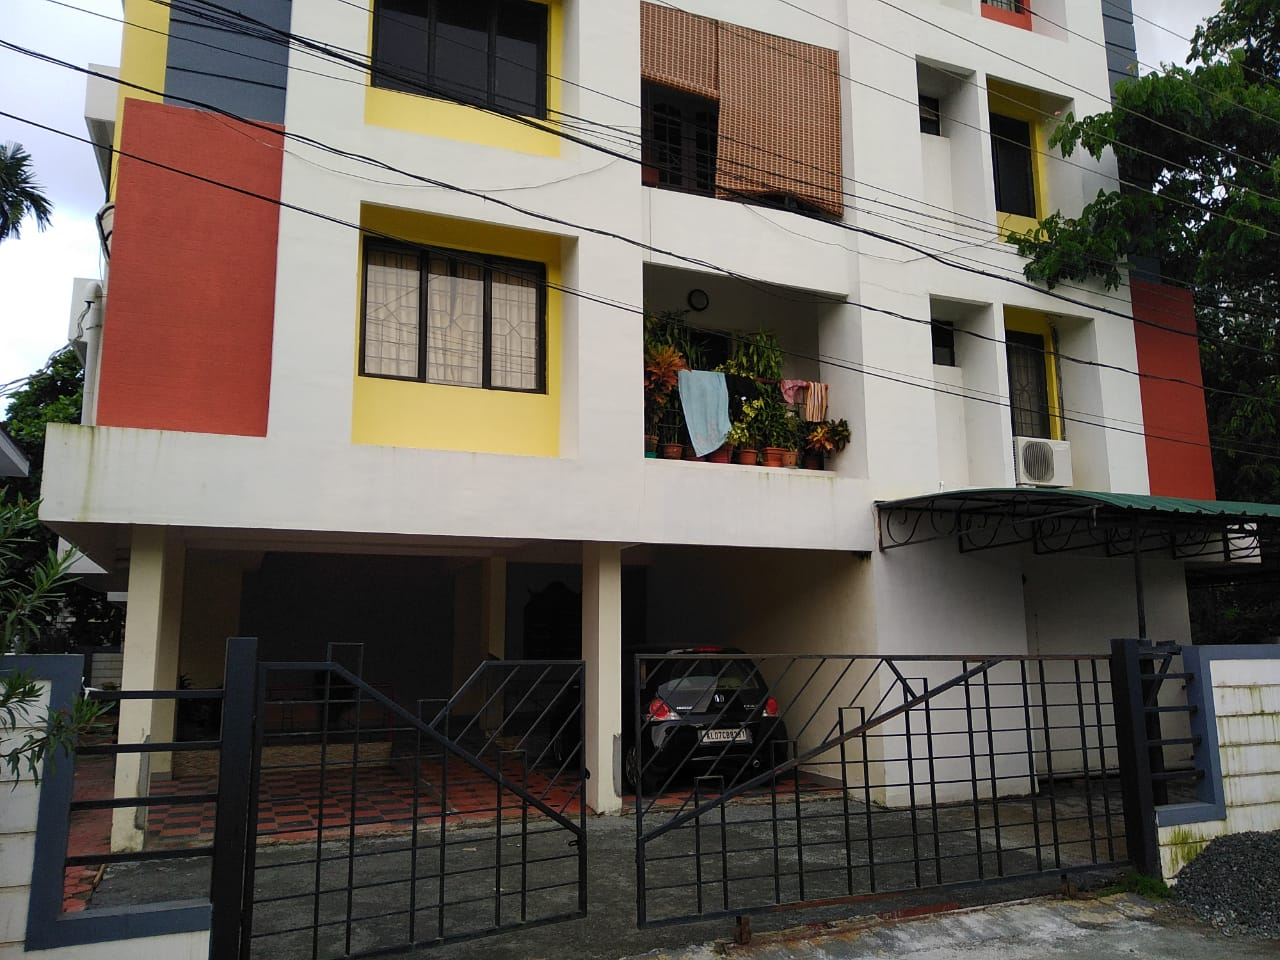 3 Bedroom Apartment for Sale in Panampilly Nagar